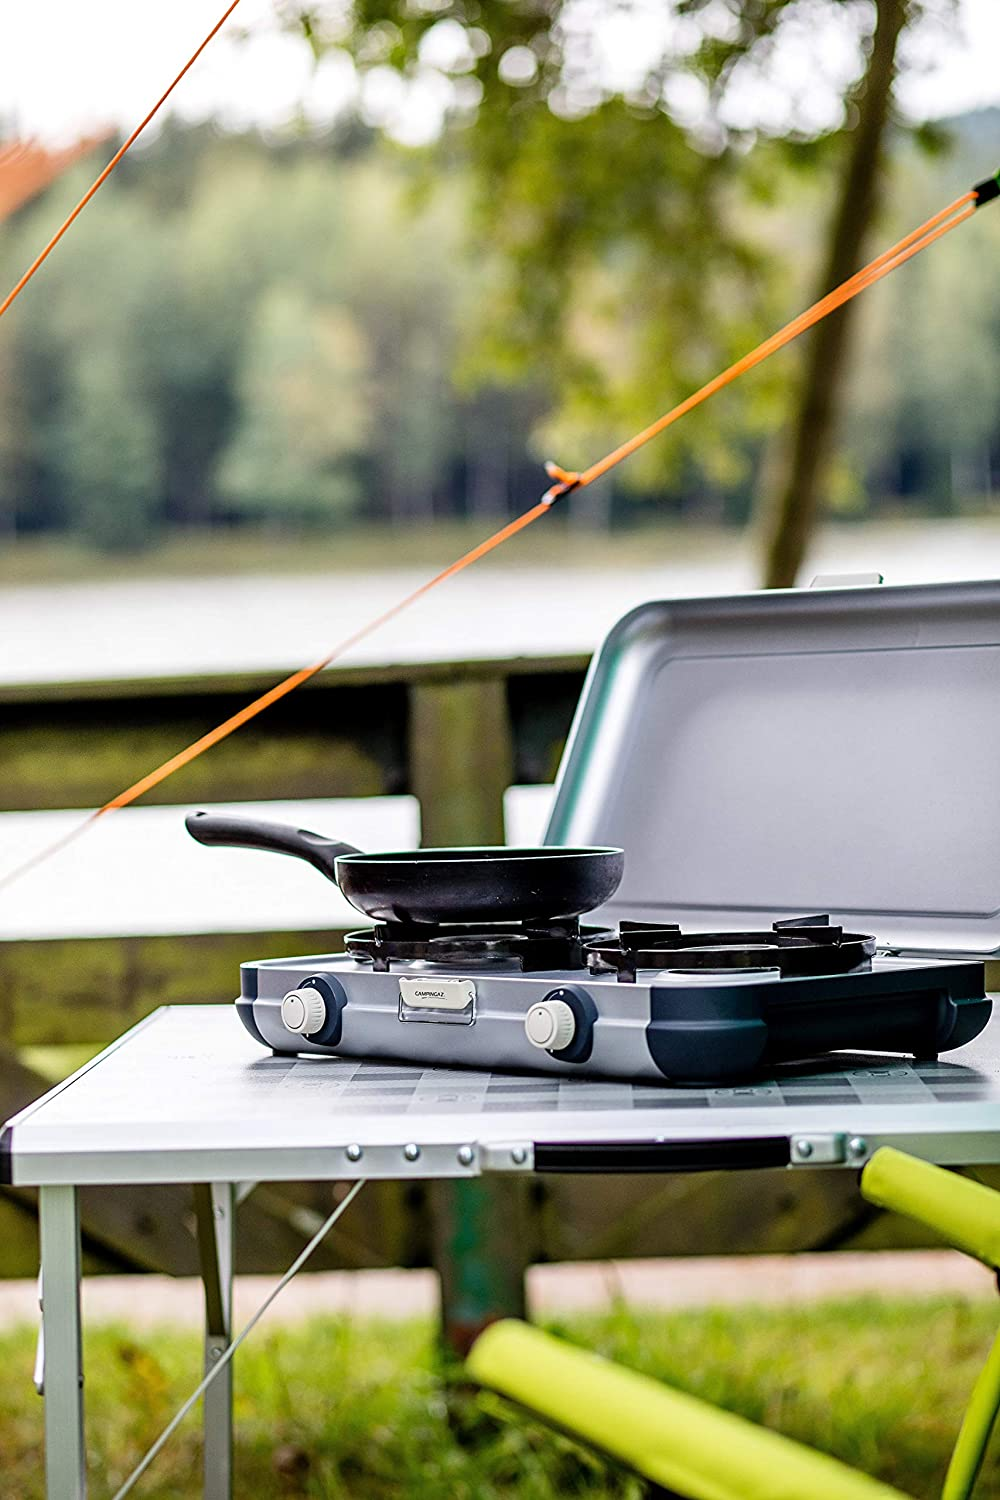 4.000/Watt Campingaz Camping Kitchen 2 Camping Stove Portable Two/Burner Gas Cooker Compact Outdoor Grill